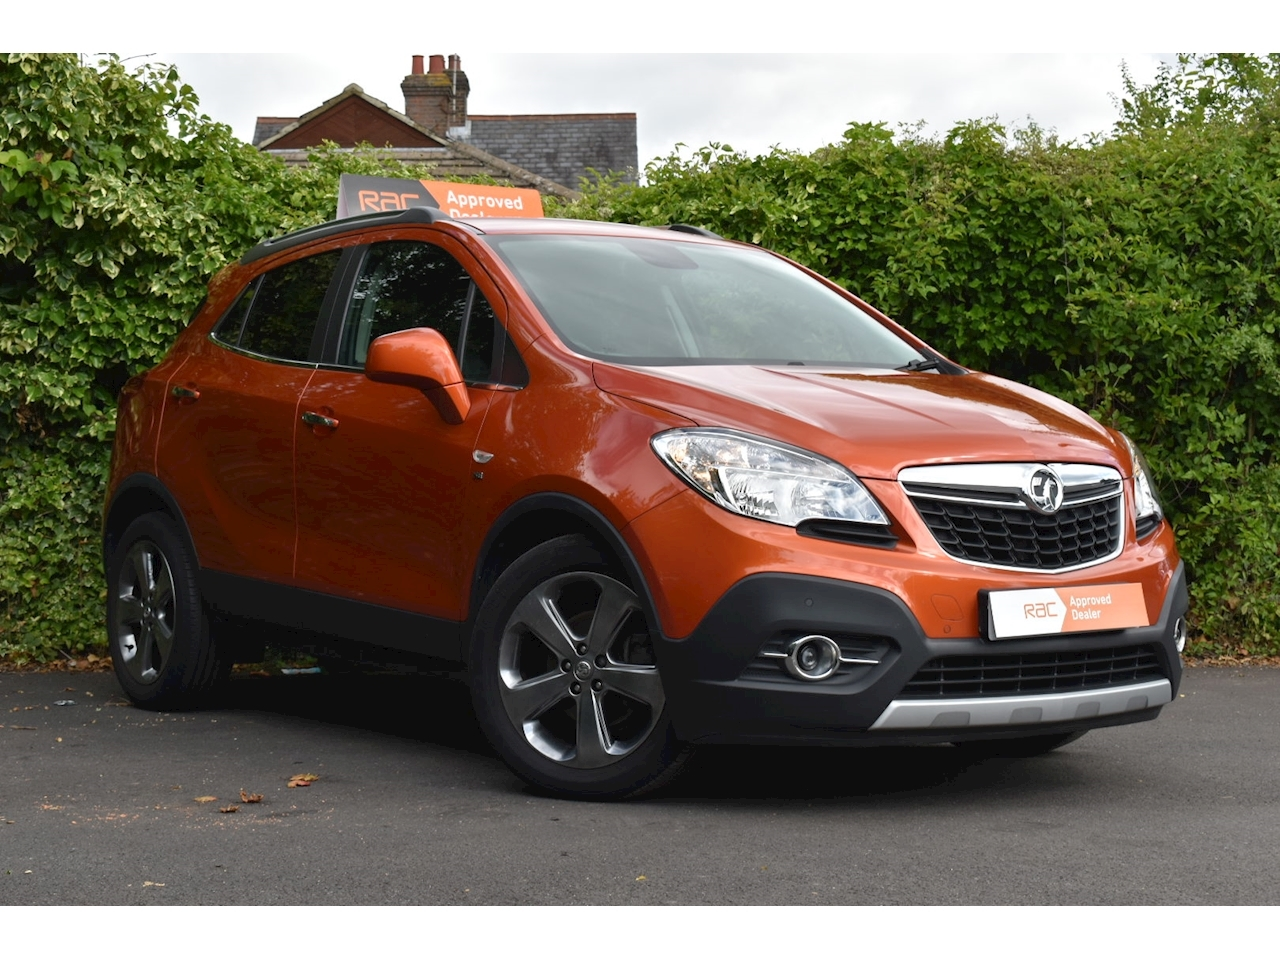 Mokka SE 1.6 5dr Hatchback Manual Petrol